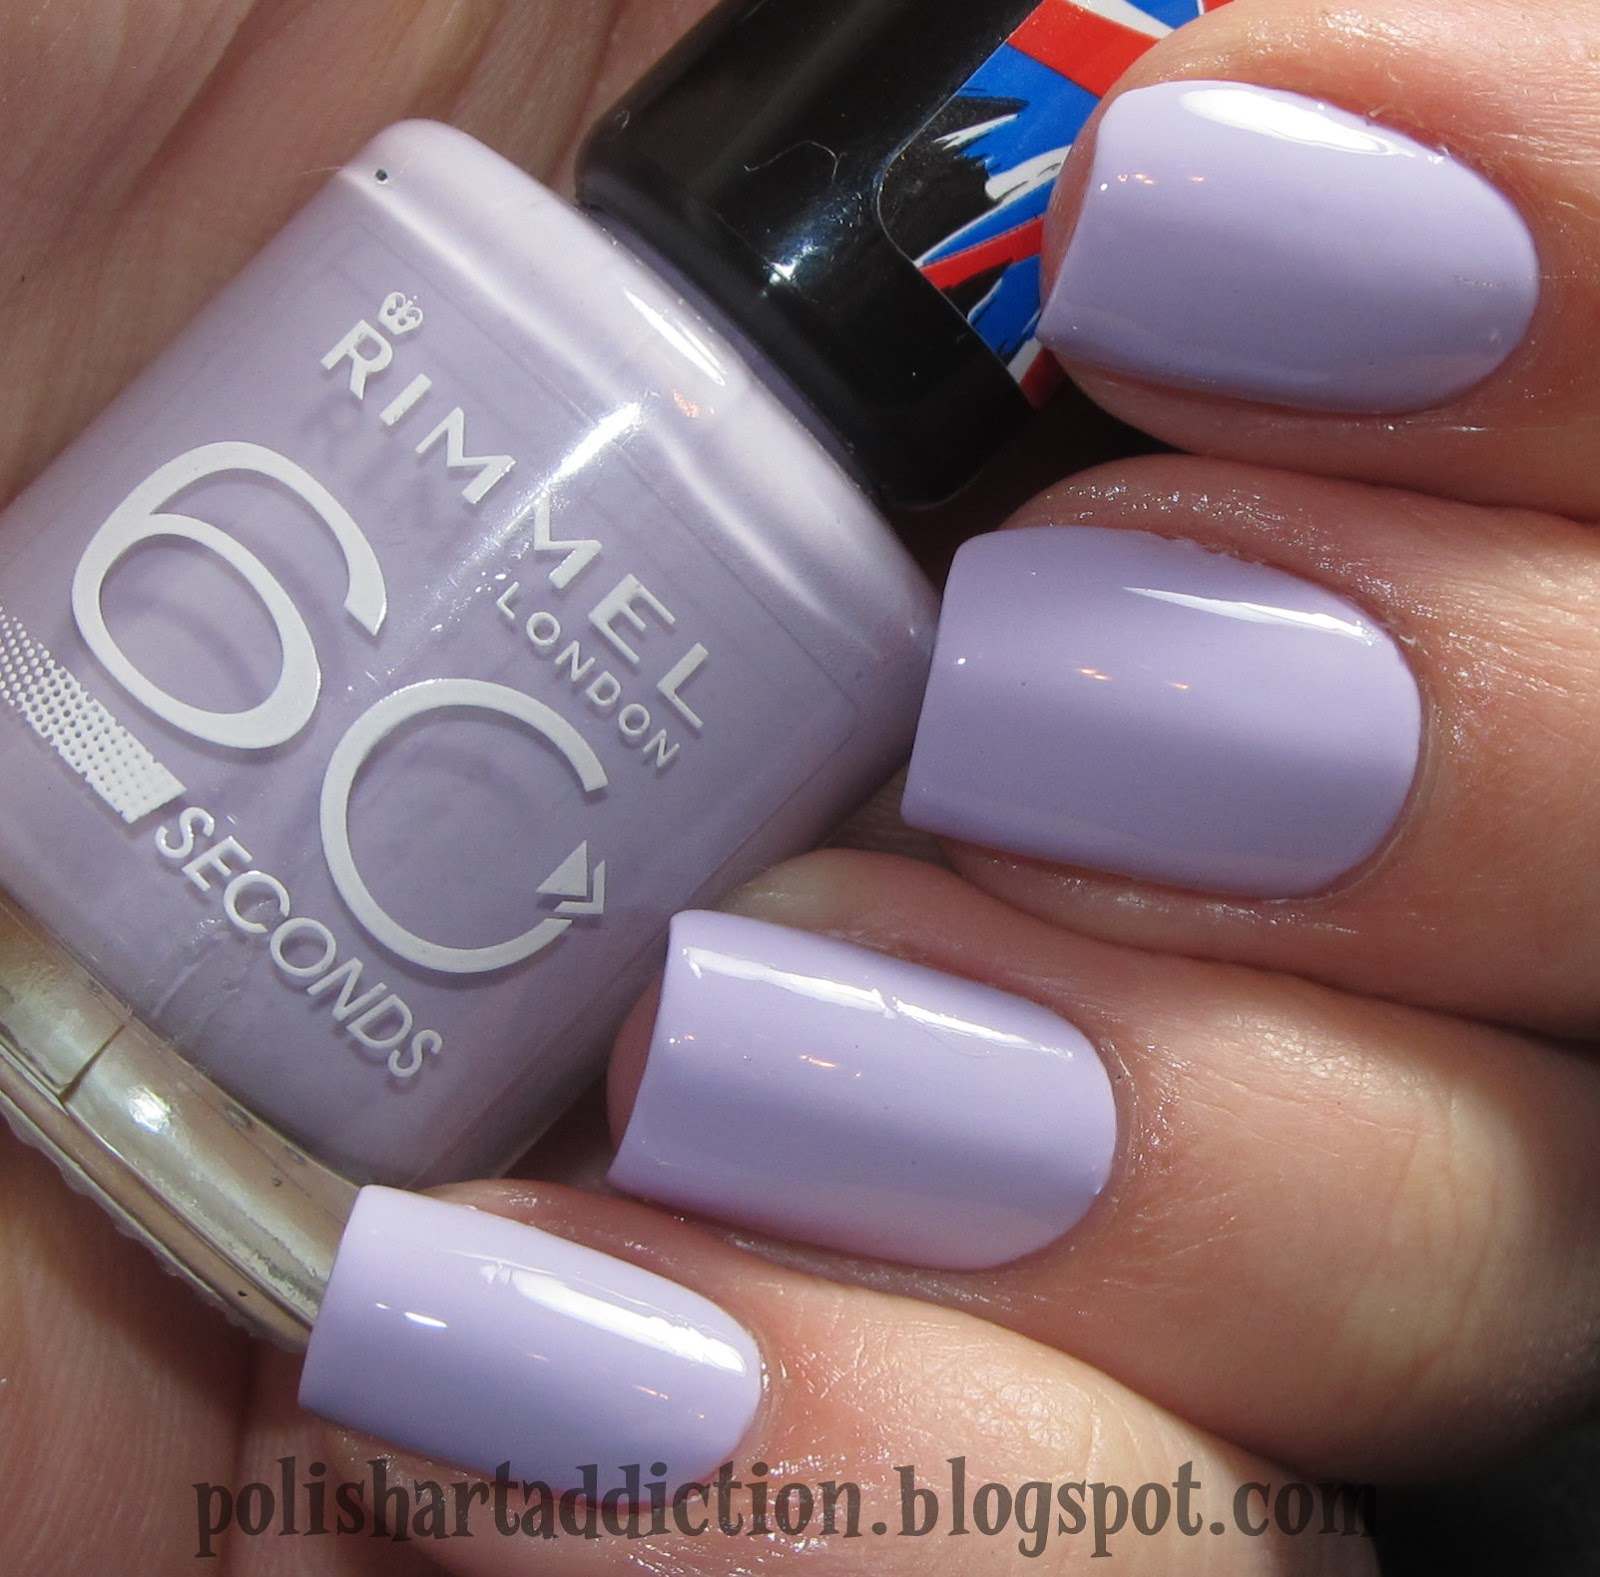 Rimmel 60 Seconds - I Lilac You